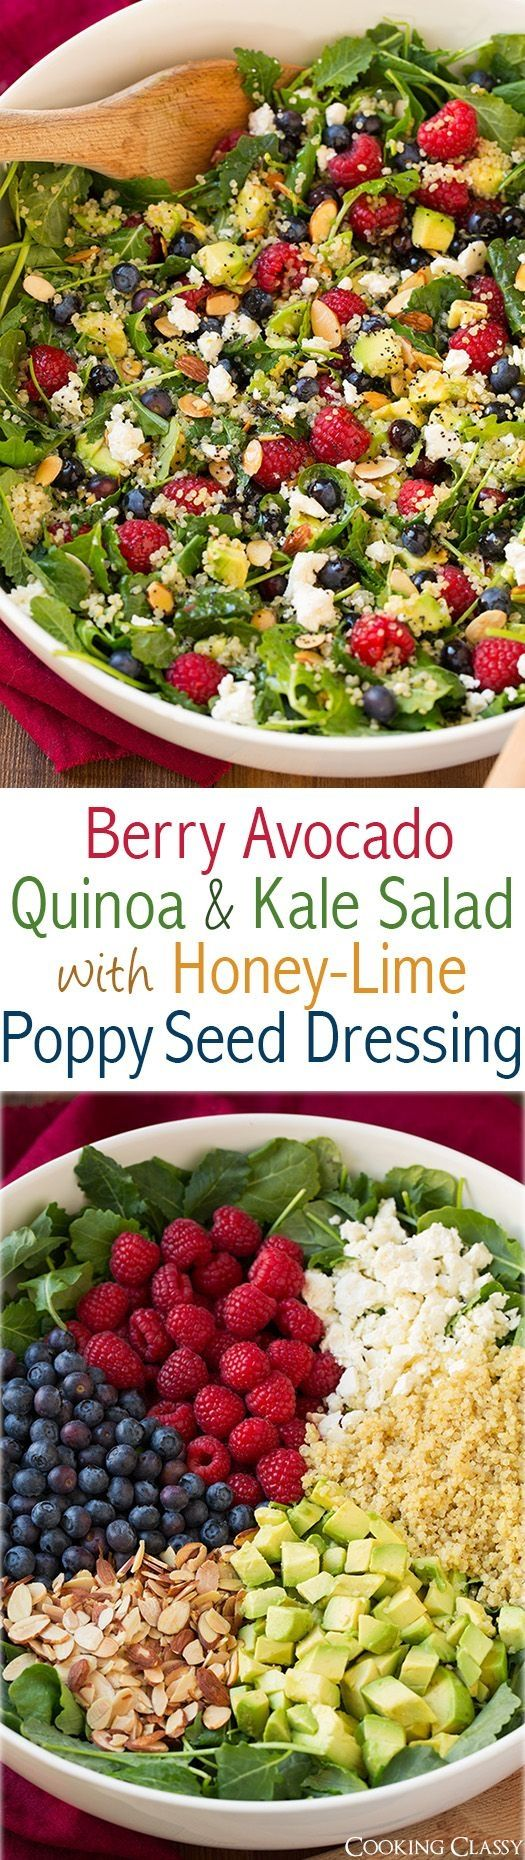 Berry Avocado Quinoa and Kale Salad with Honey-Lime Poppy Seed Dressing - a healthy superfood salad that is full of delicious flavors! You love this one! by aftr